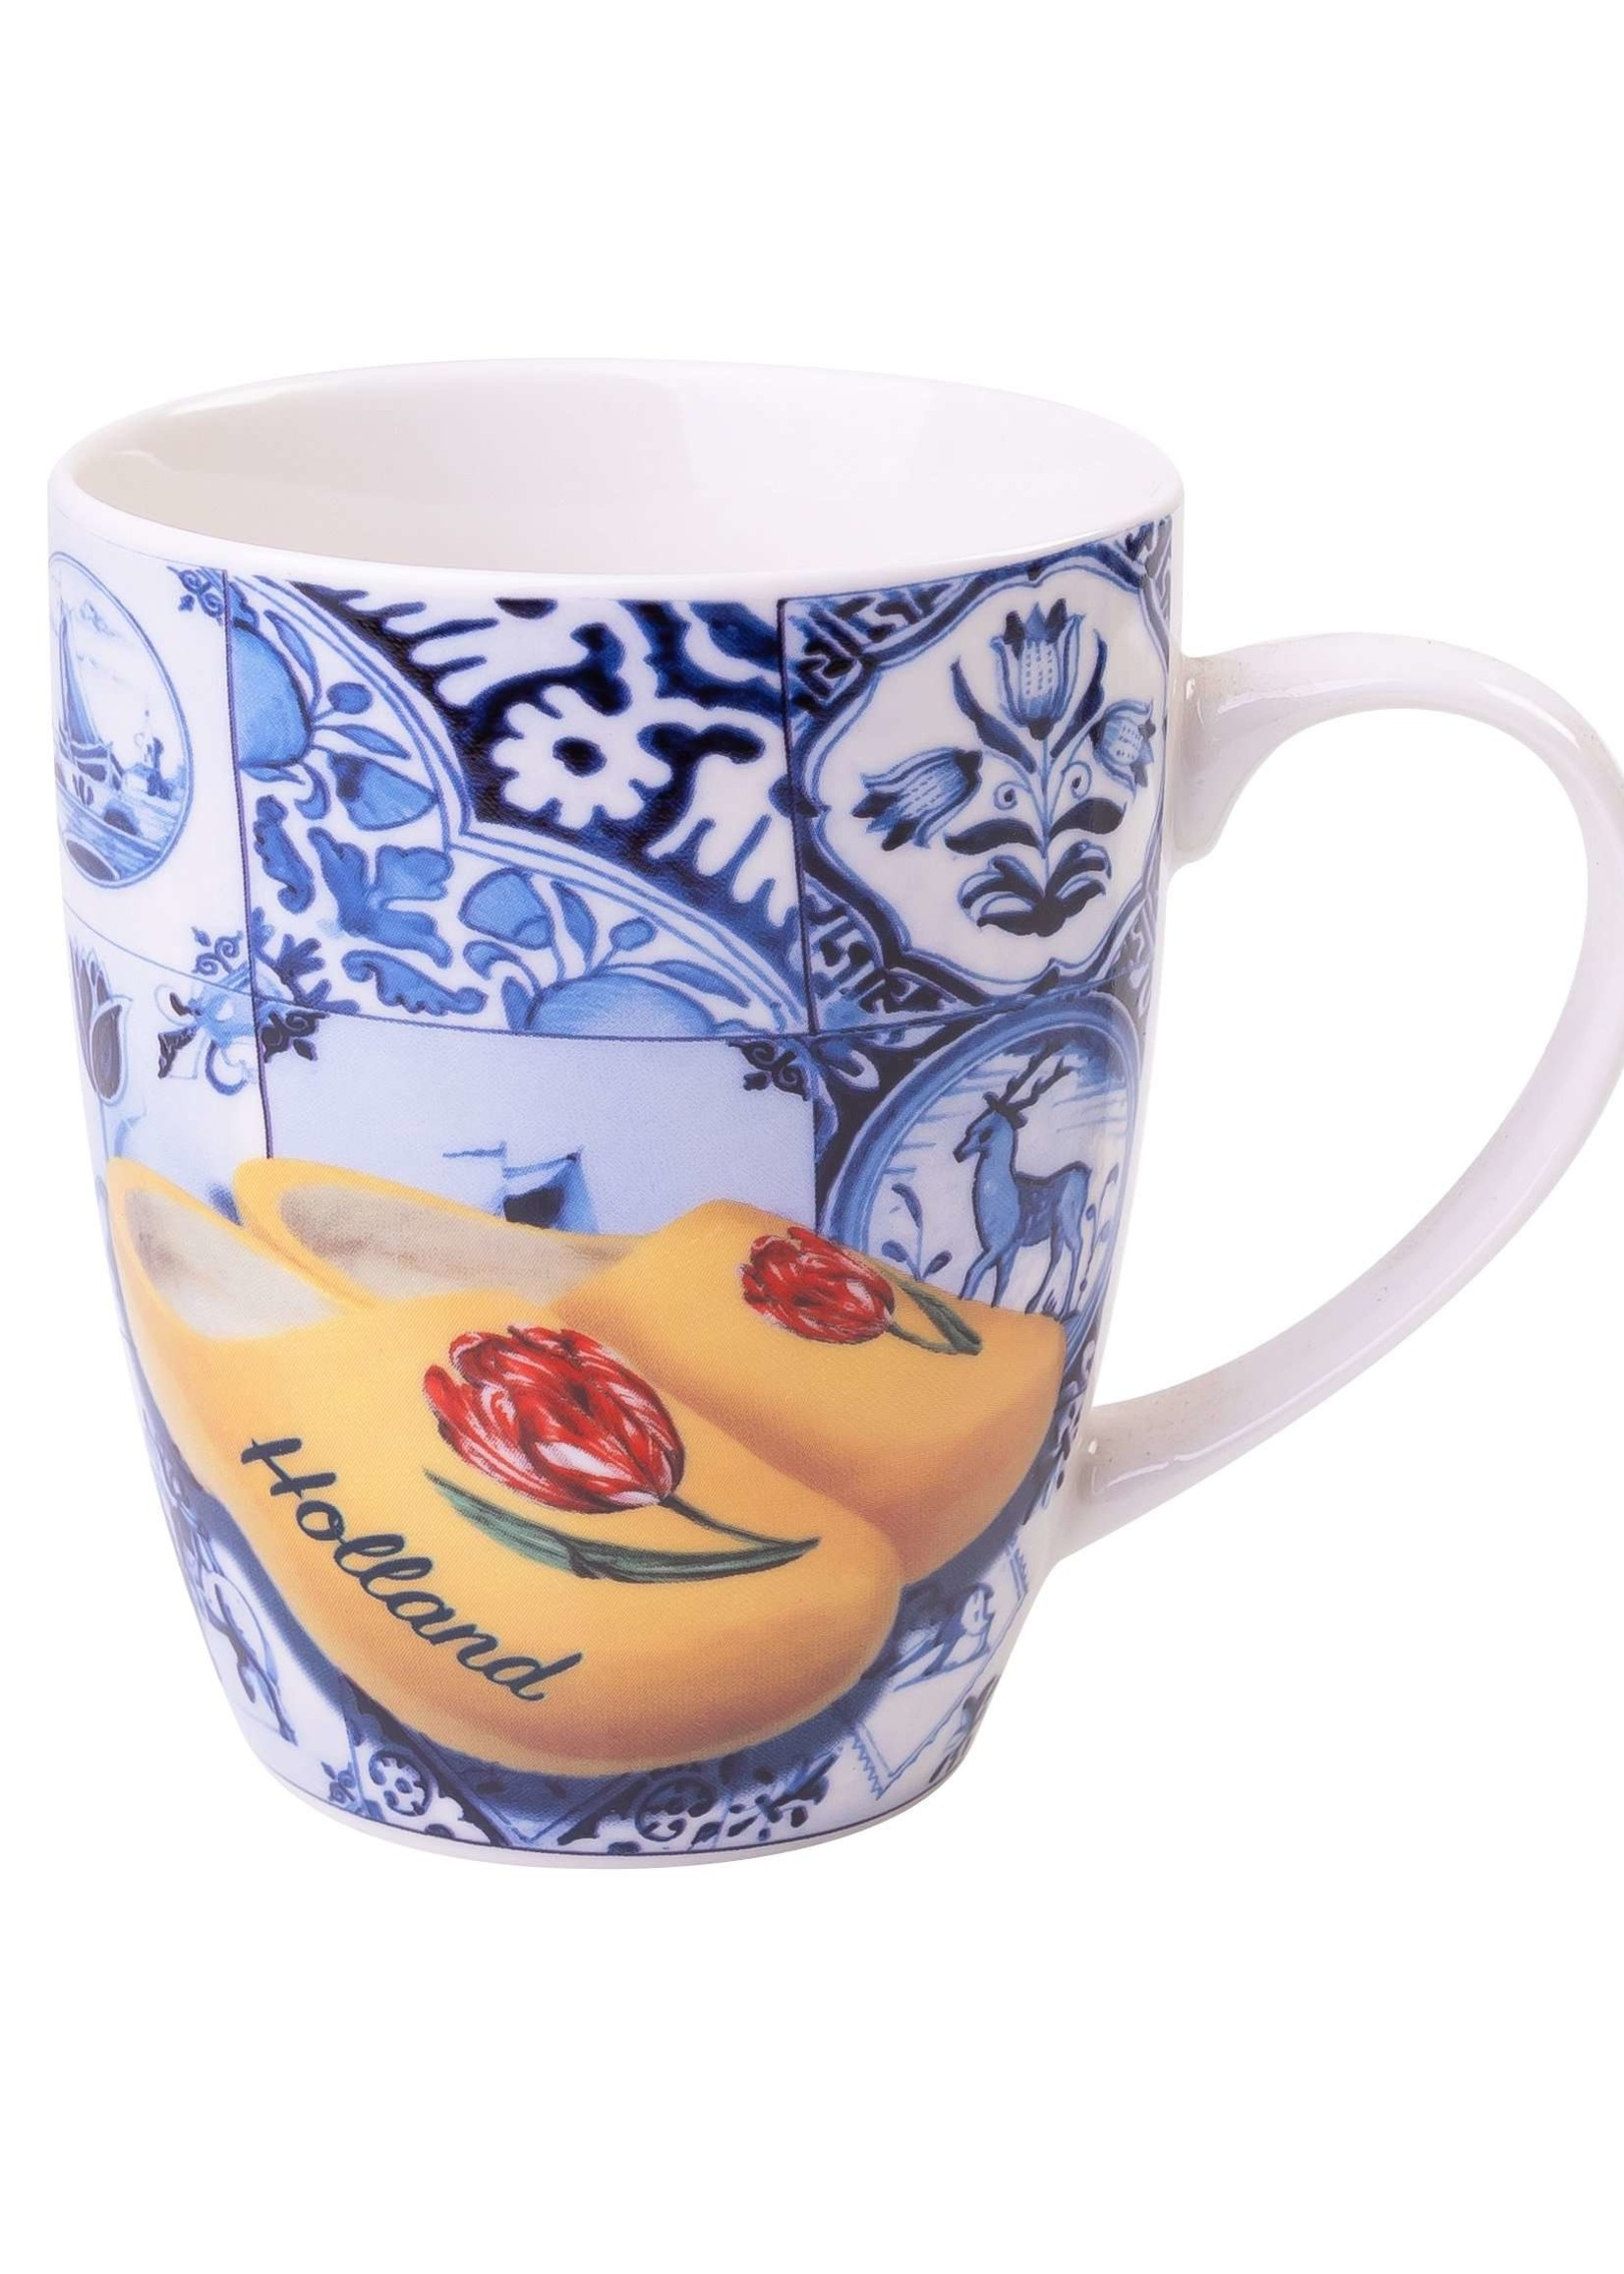 Delft Blue Mug with Tiles and Wooden Shoes, 300 ml / 10,1 oz